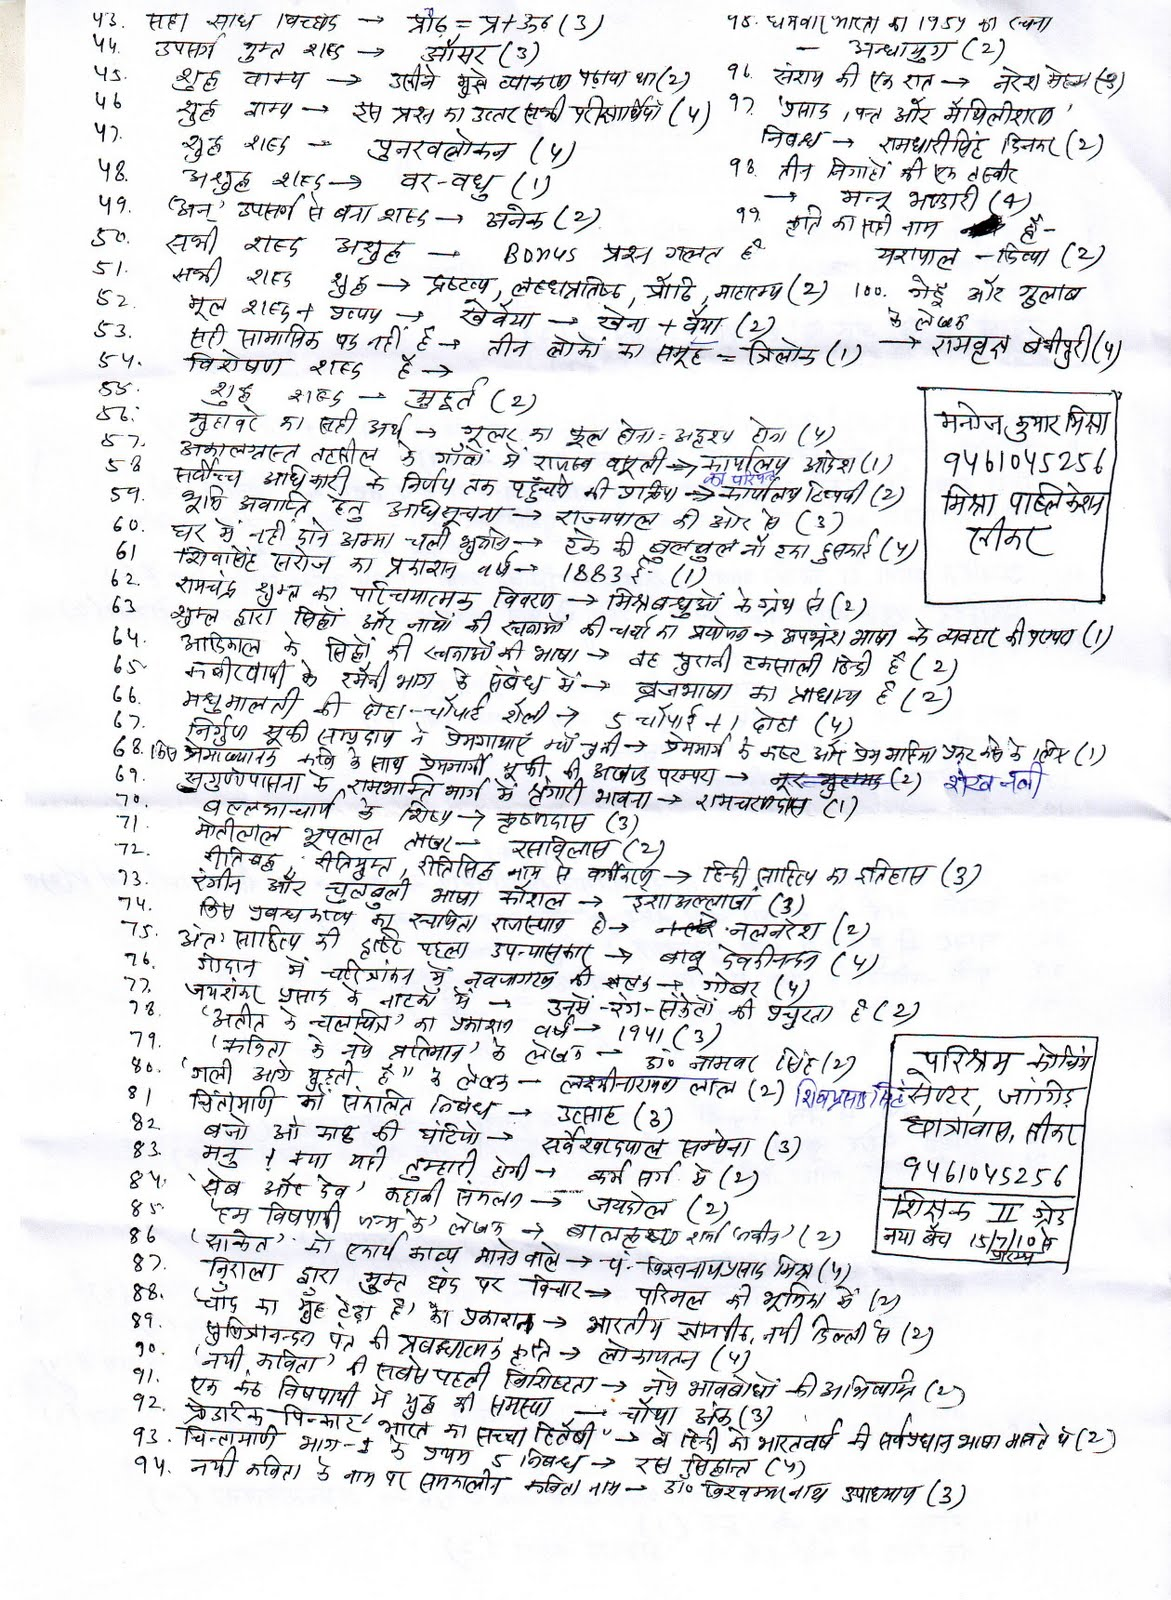 ... : Hindi Grade First RPSC Lecturer Exam Held on 11-7-2010